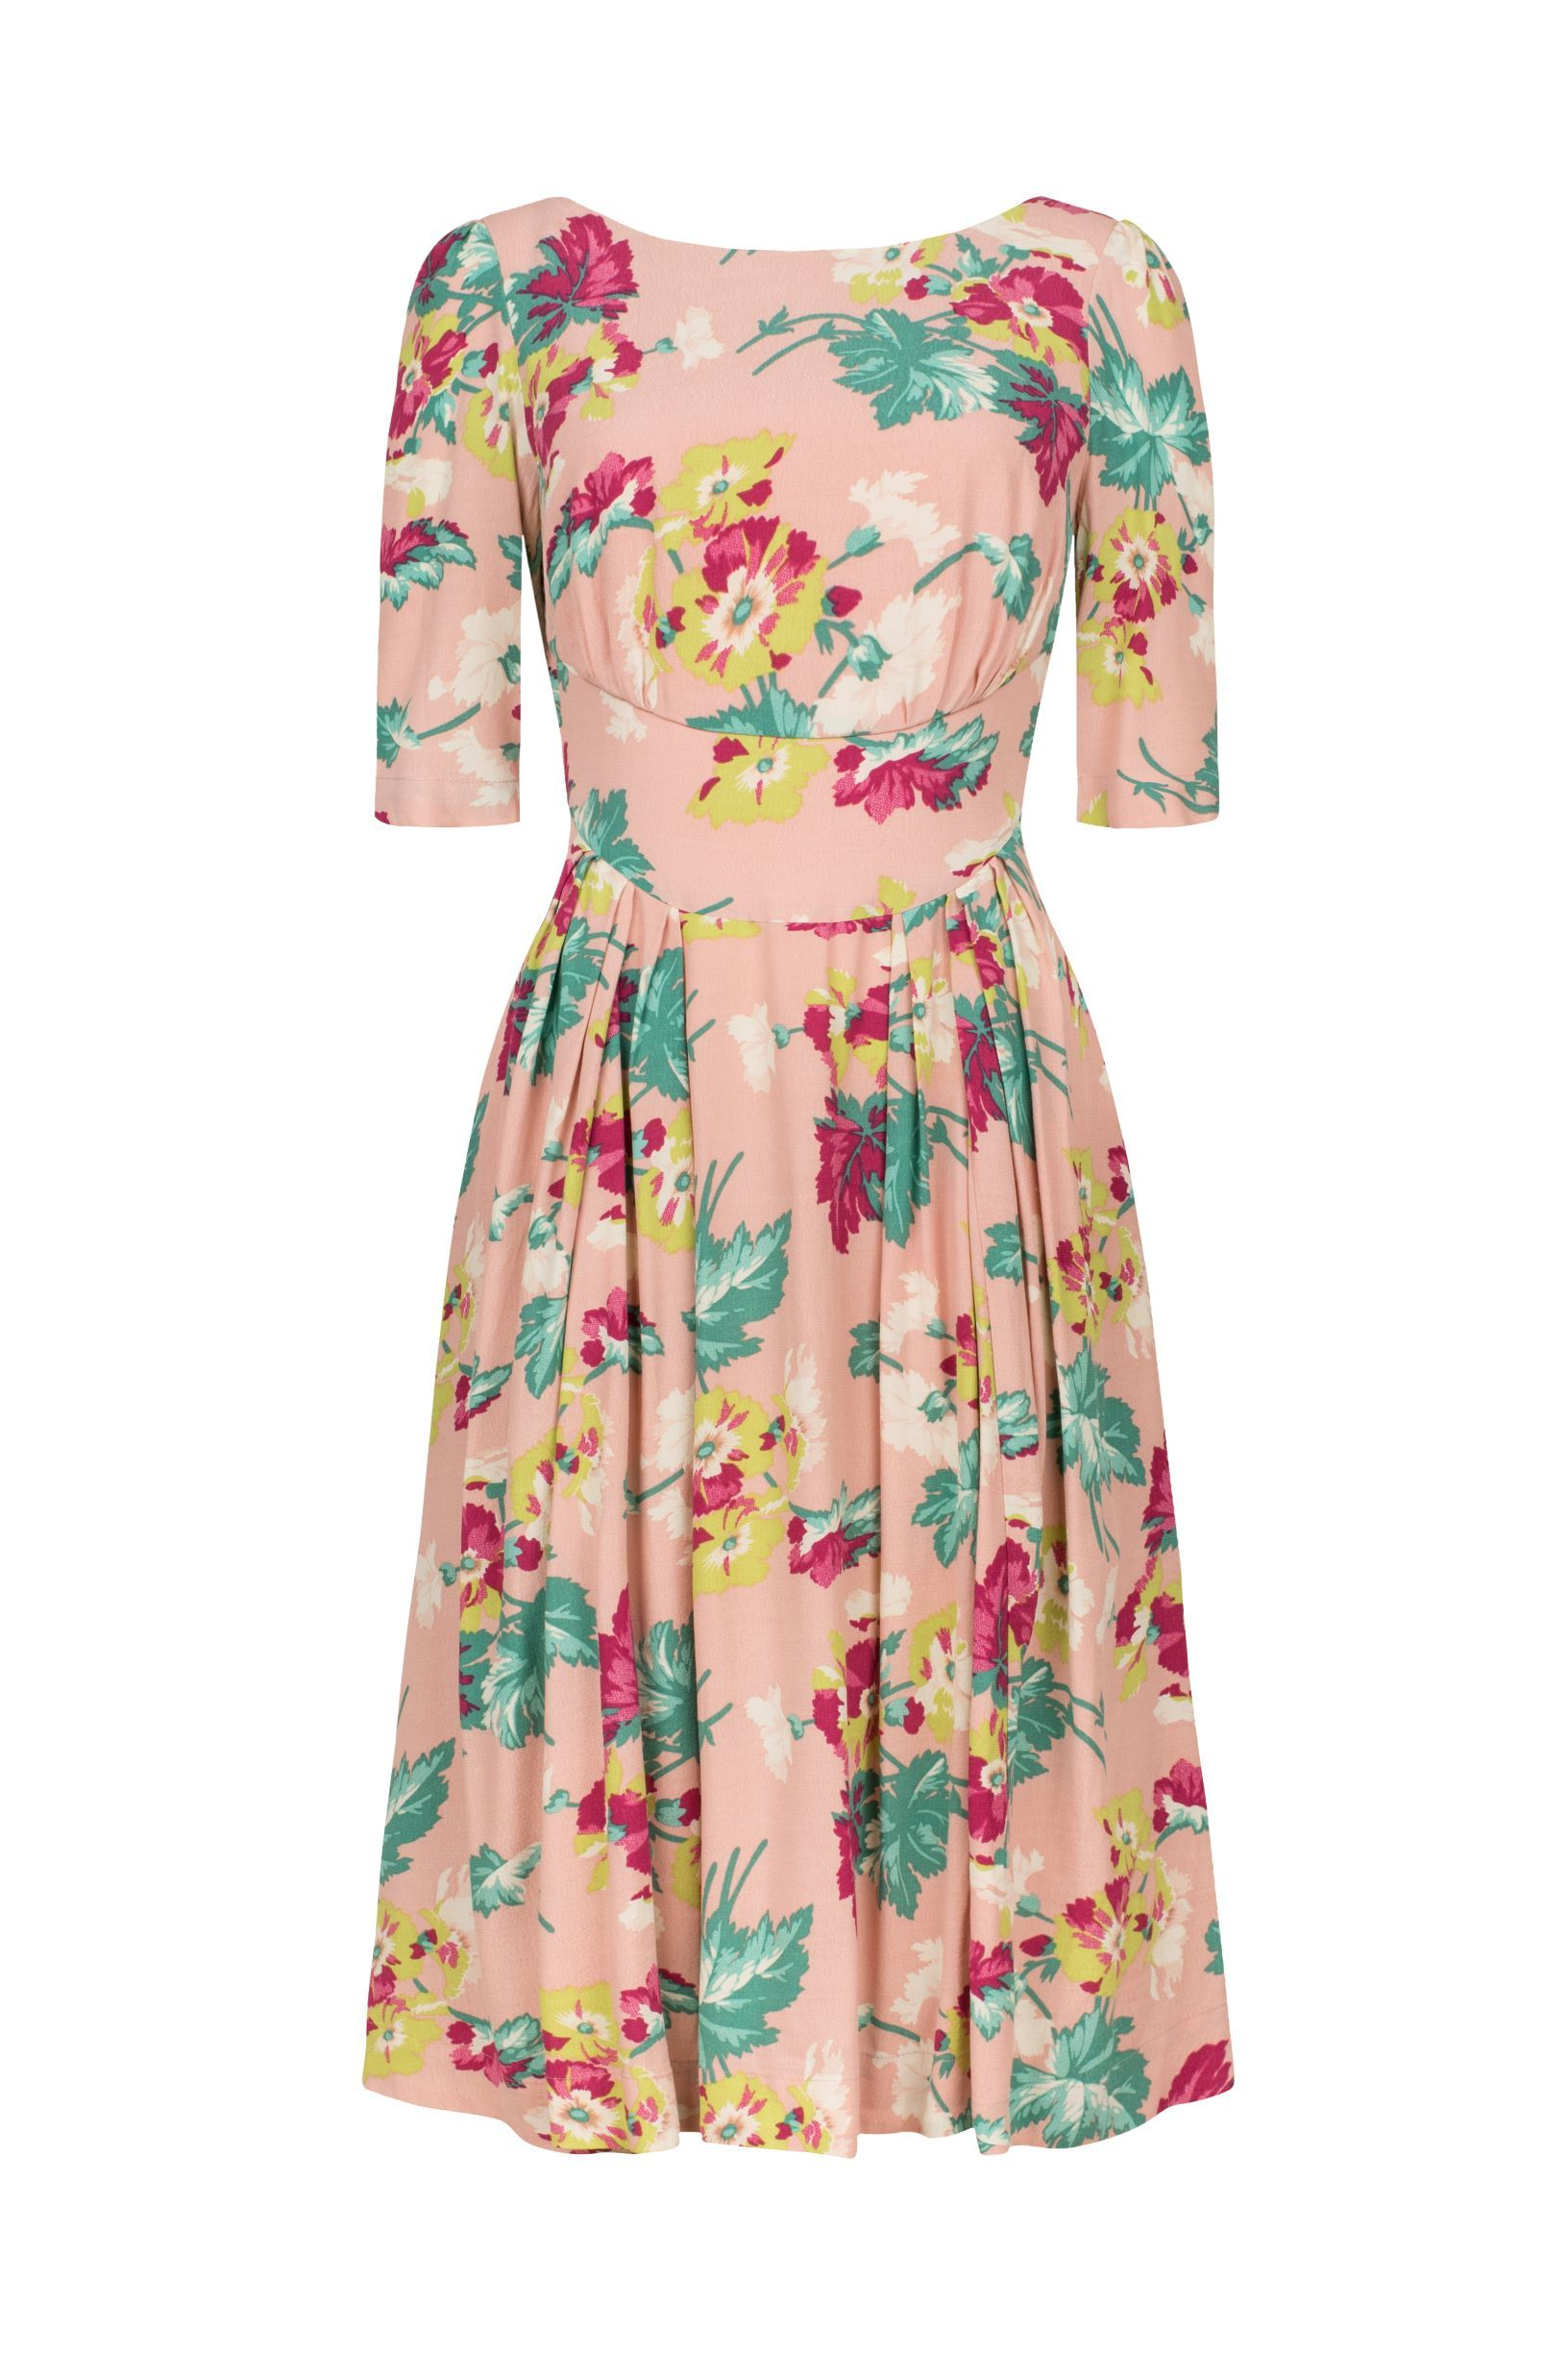 Pretty in Pink Floral Louisa Dress Emily & Fin - BouChic